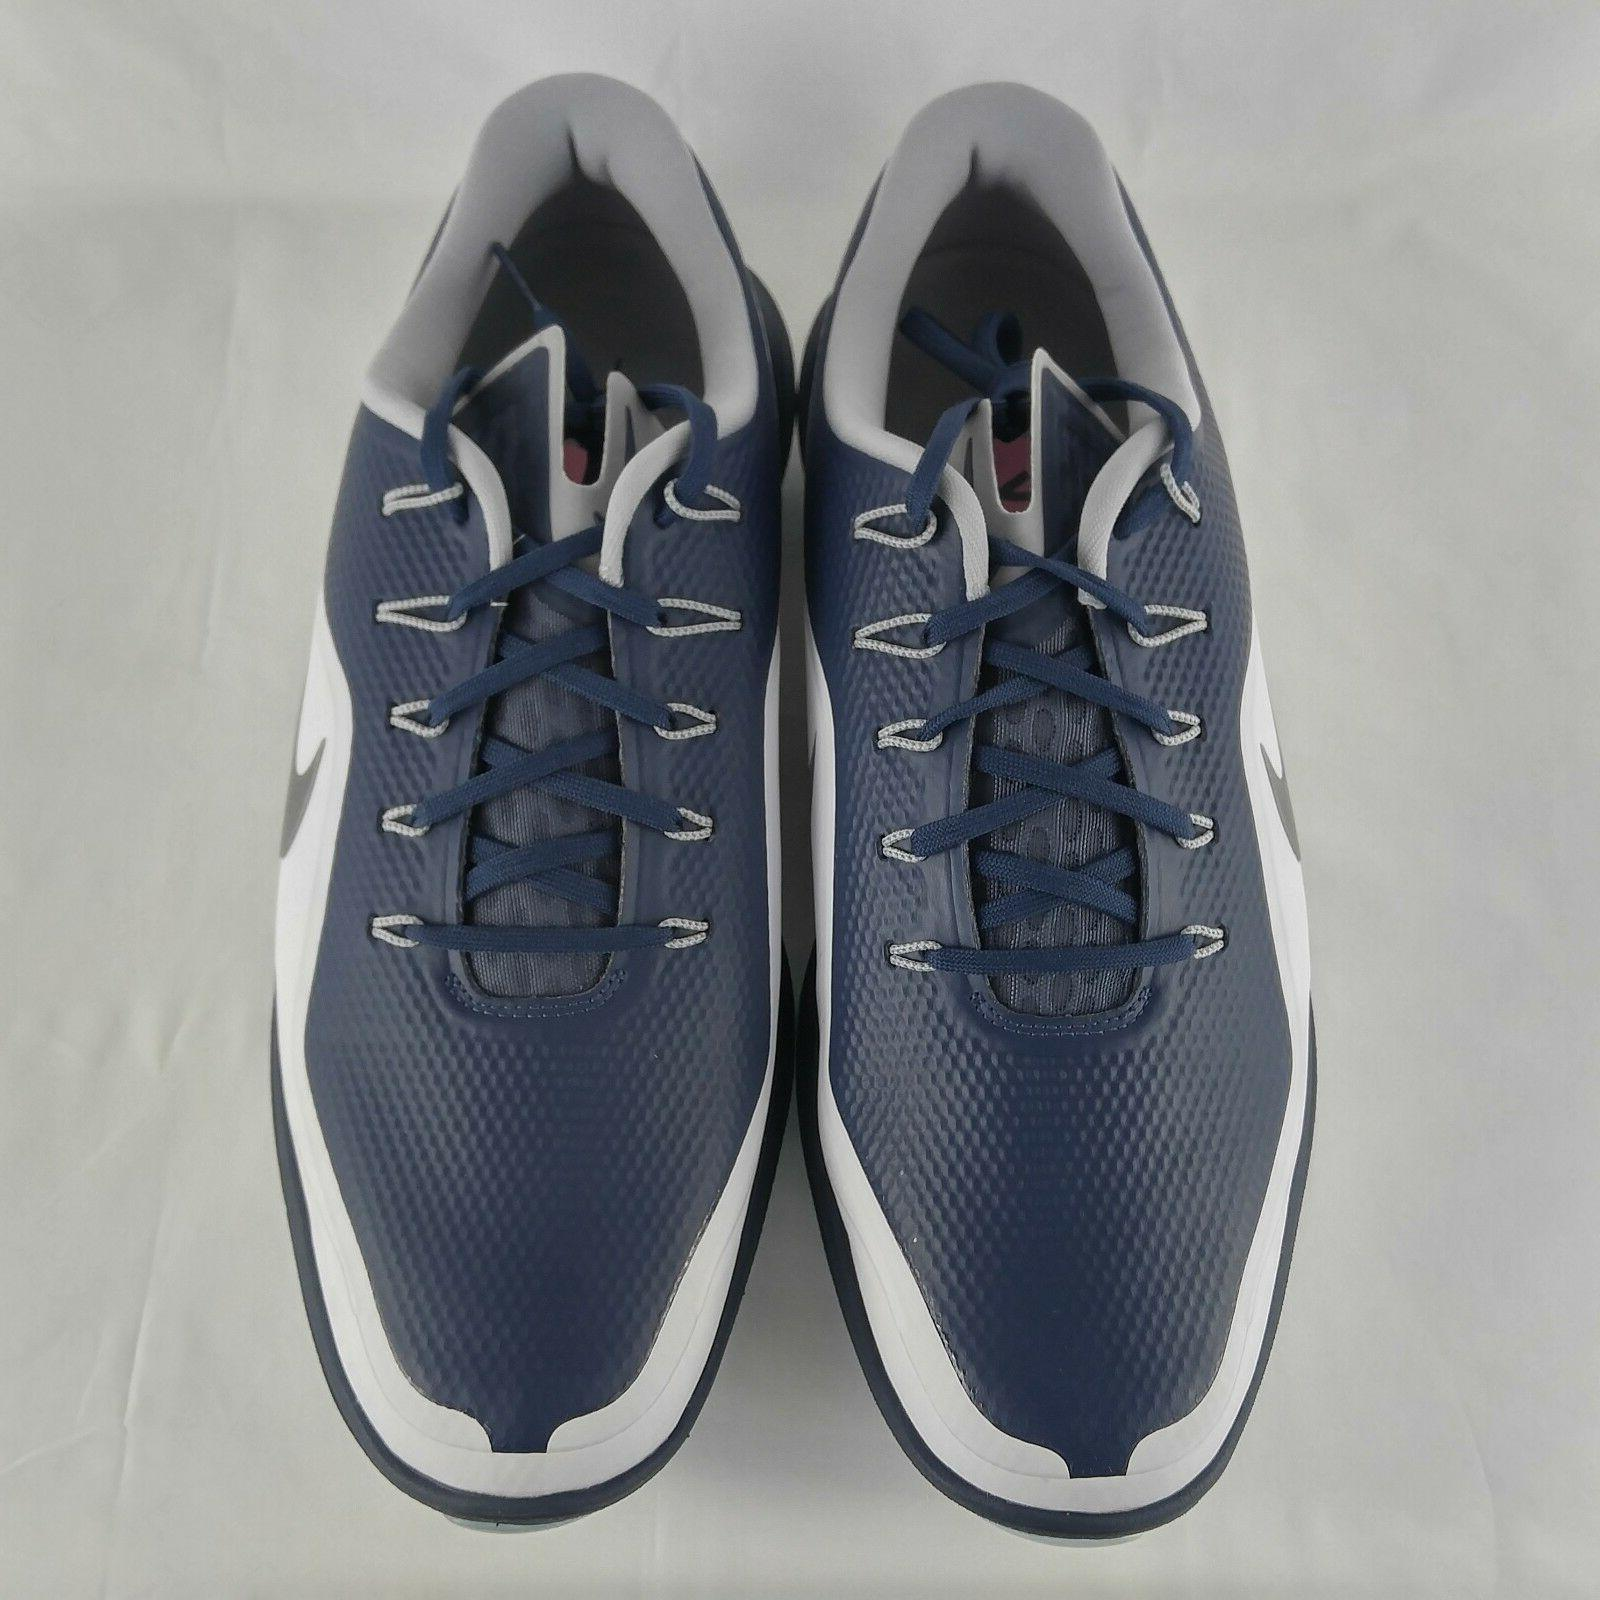 Nike 2 Cleats Shoes Thunder Blue 899633-400